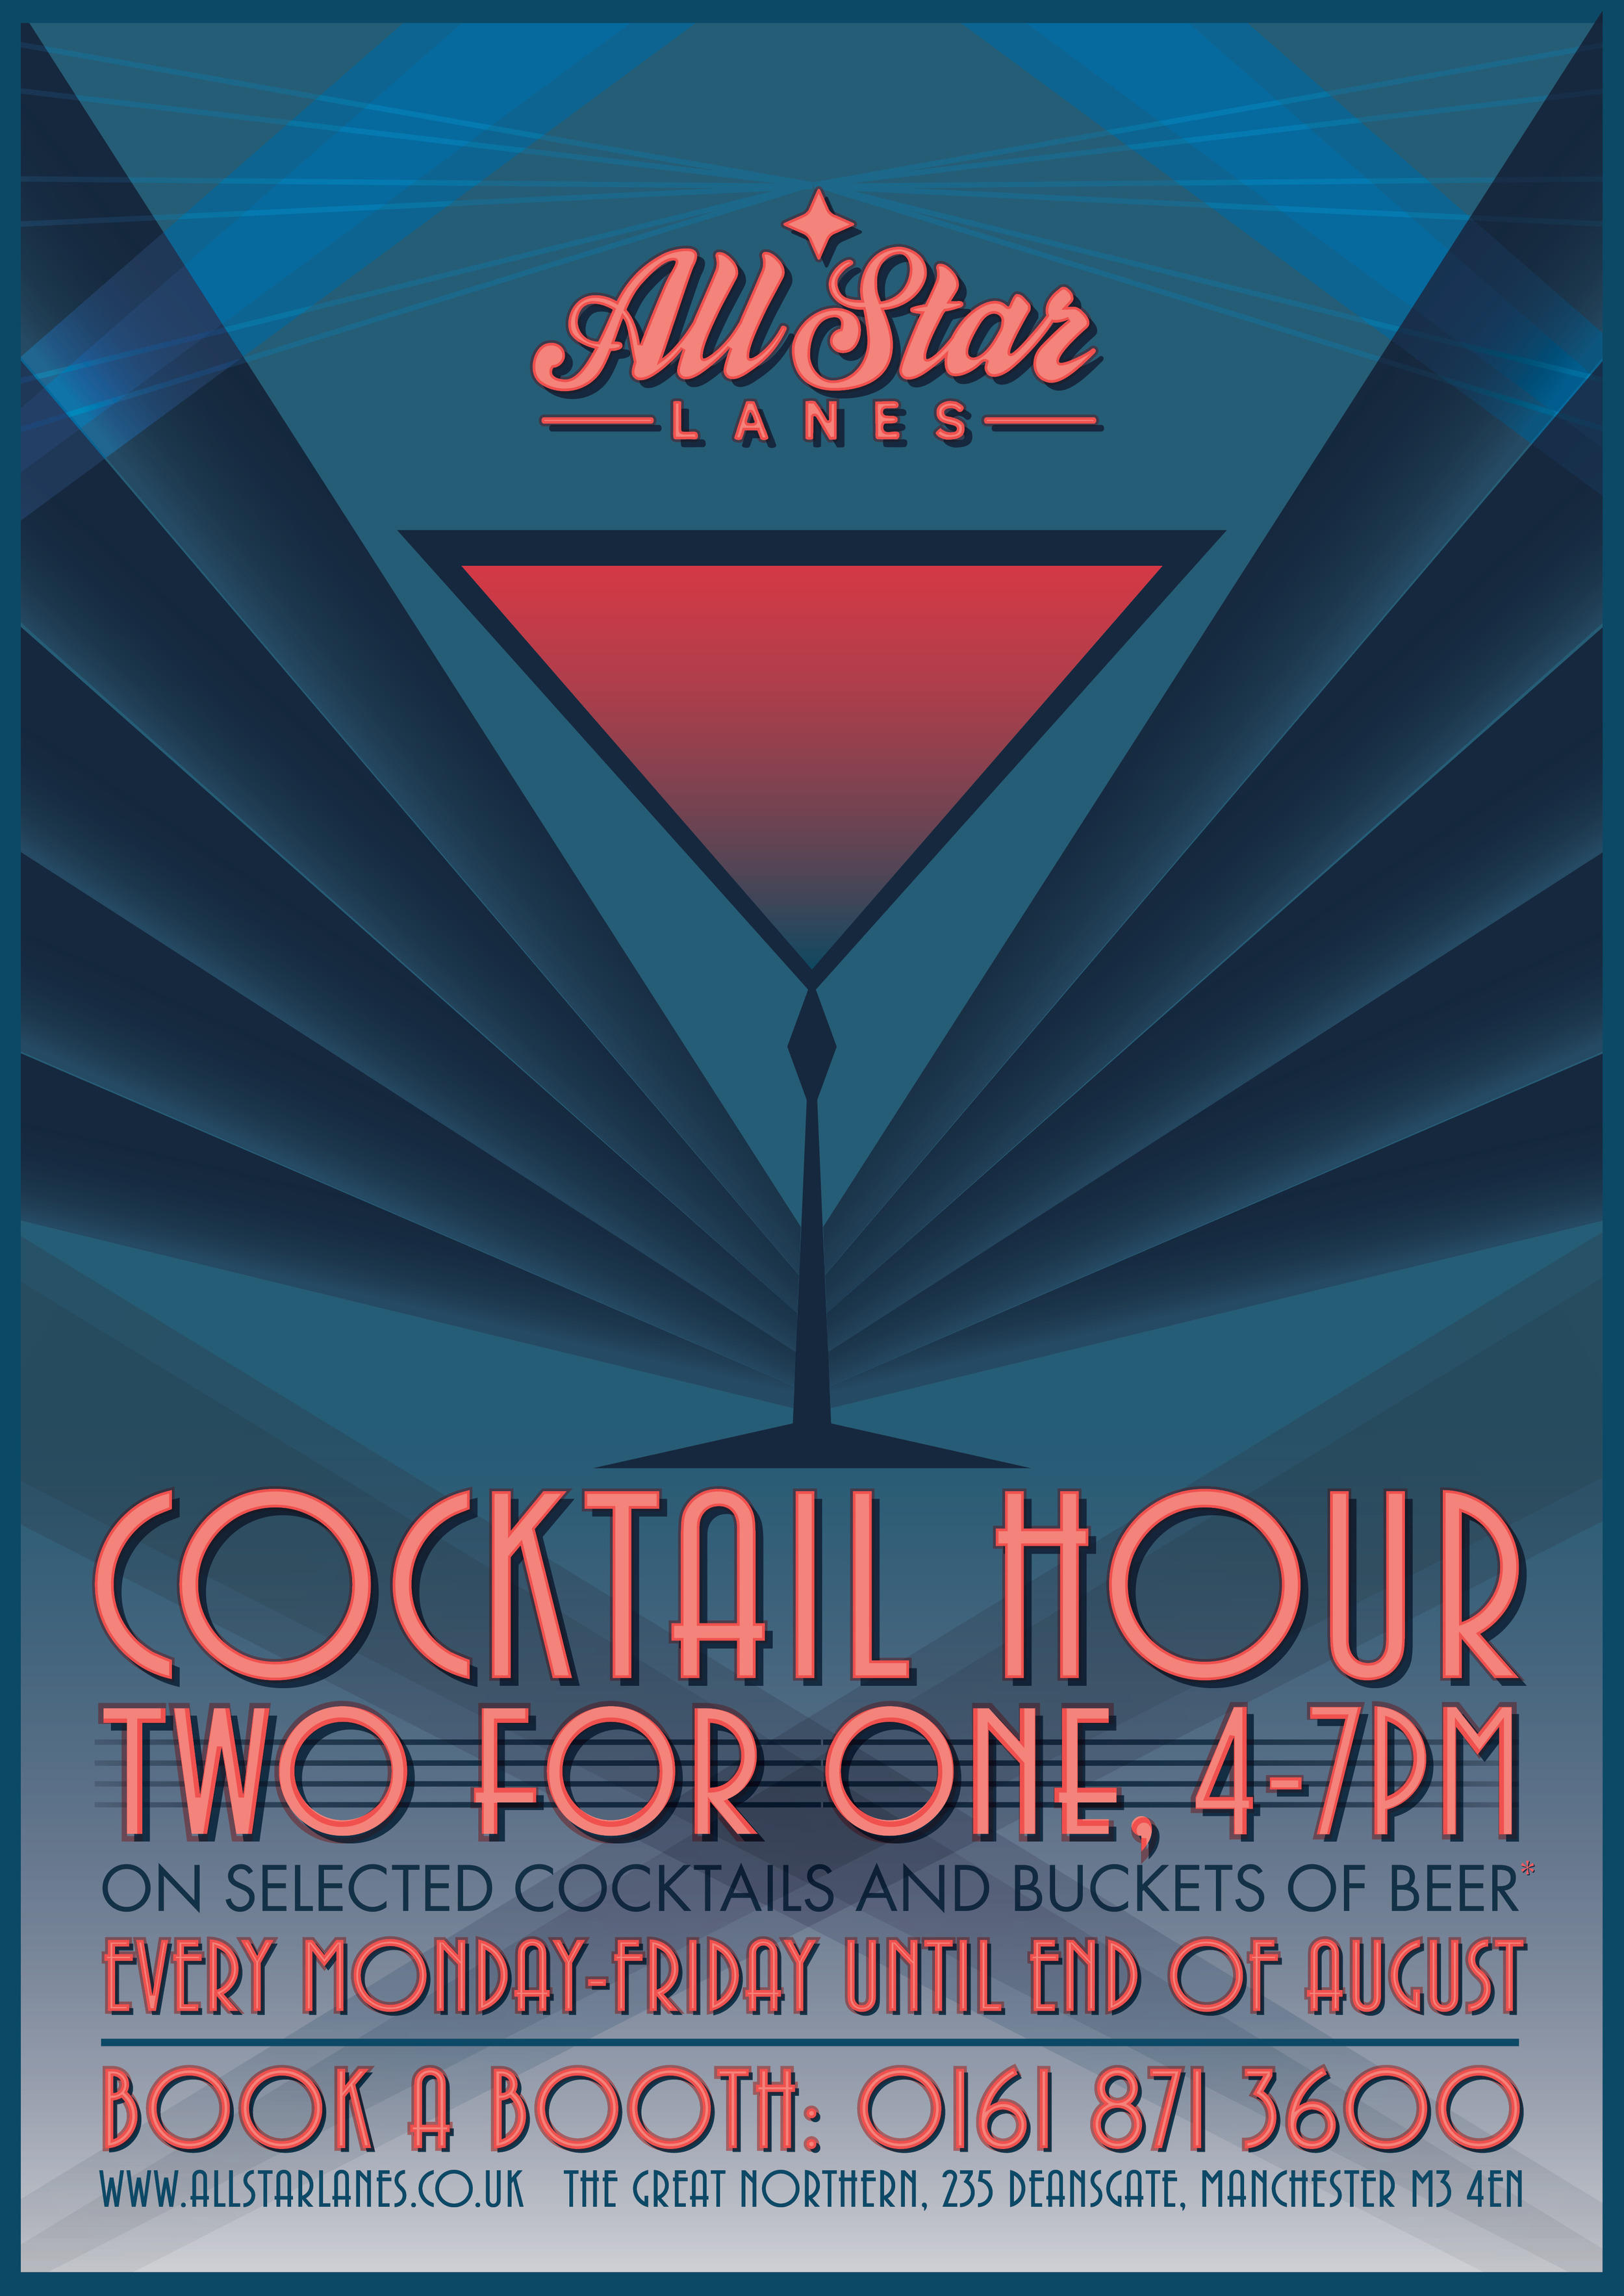 131008_Cocktail Hour Poster A1.jpg